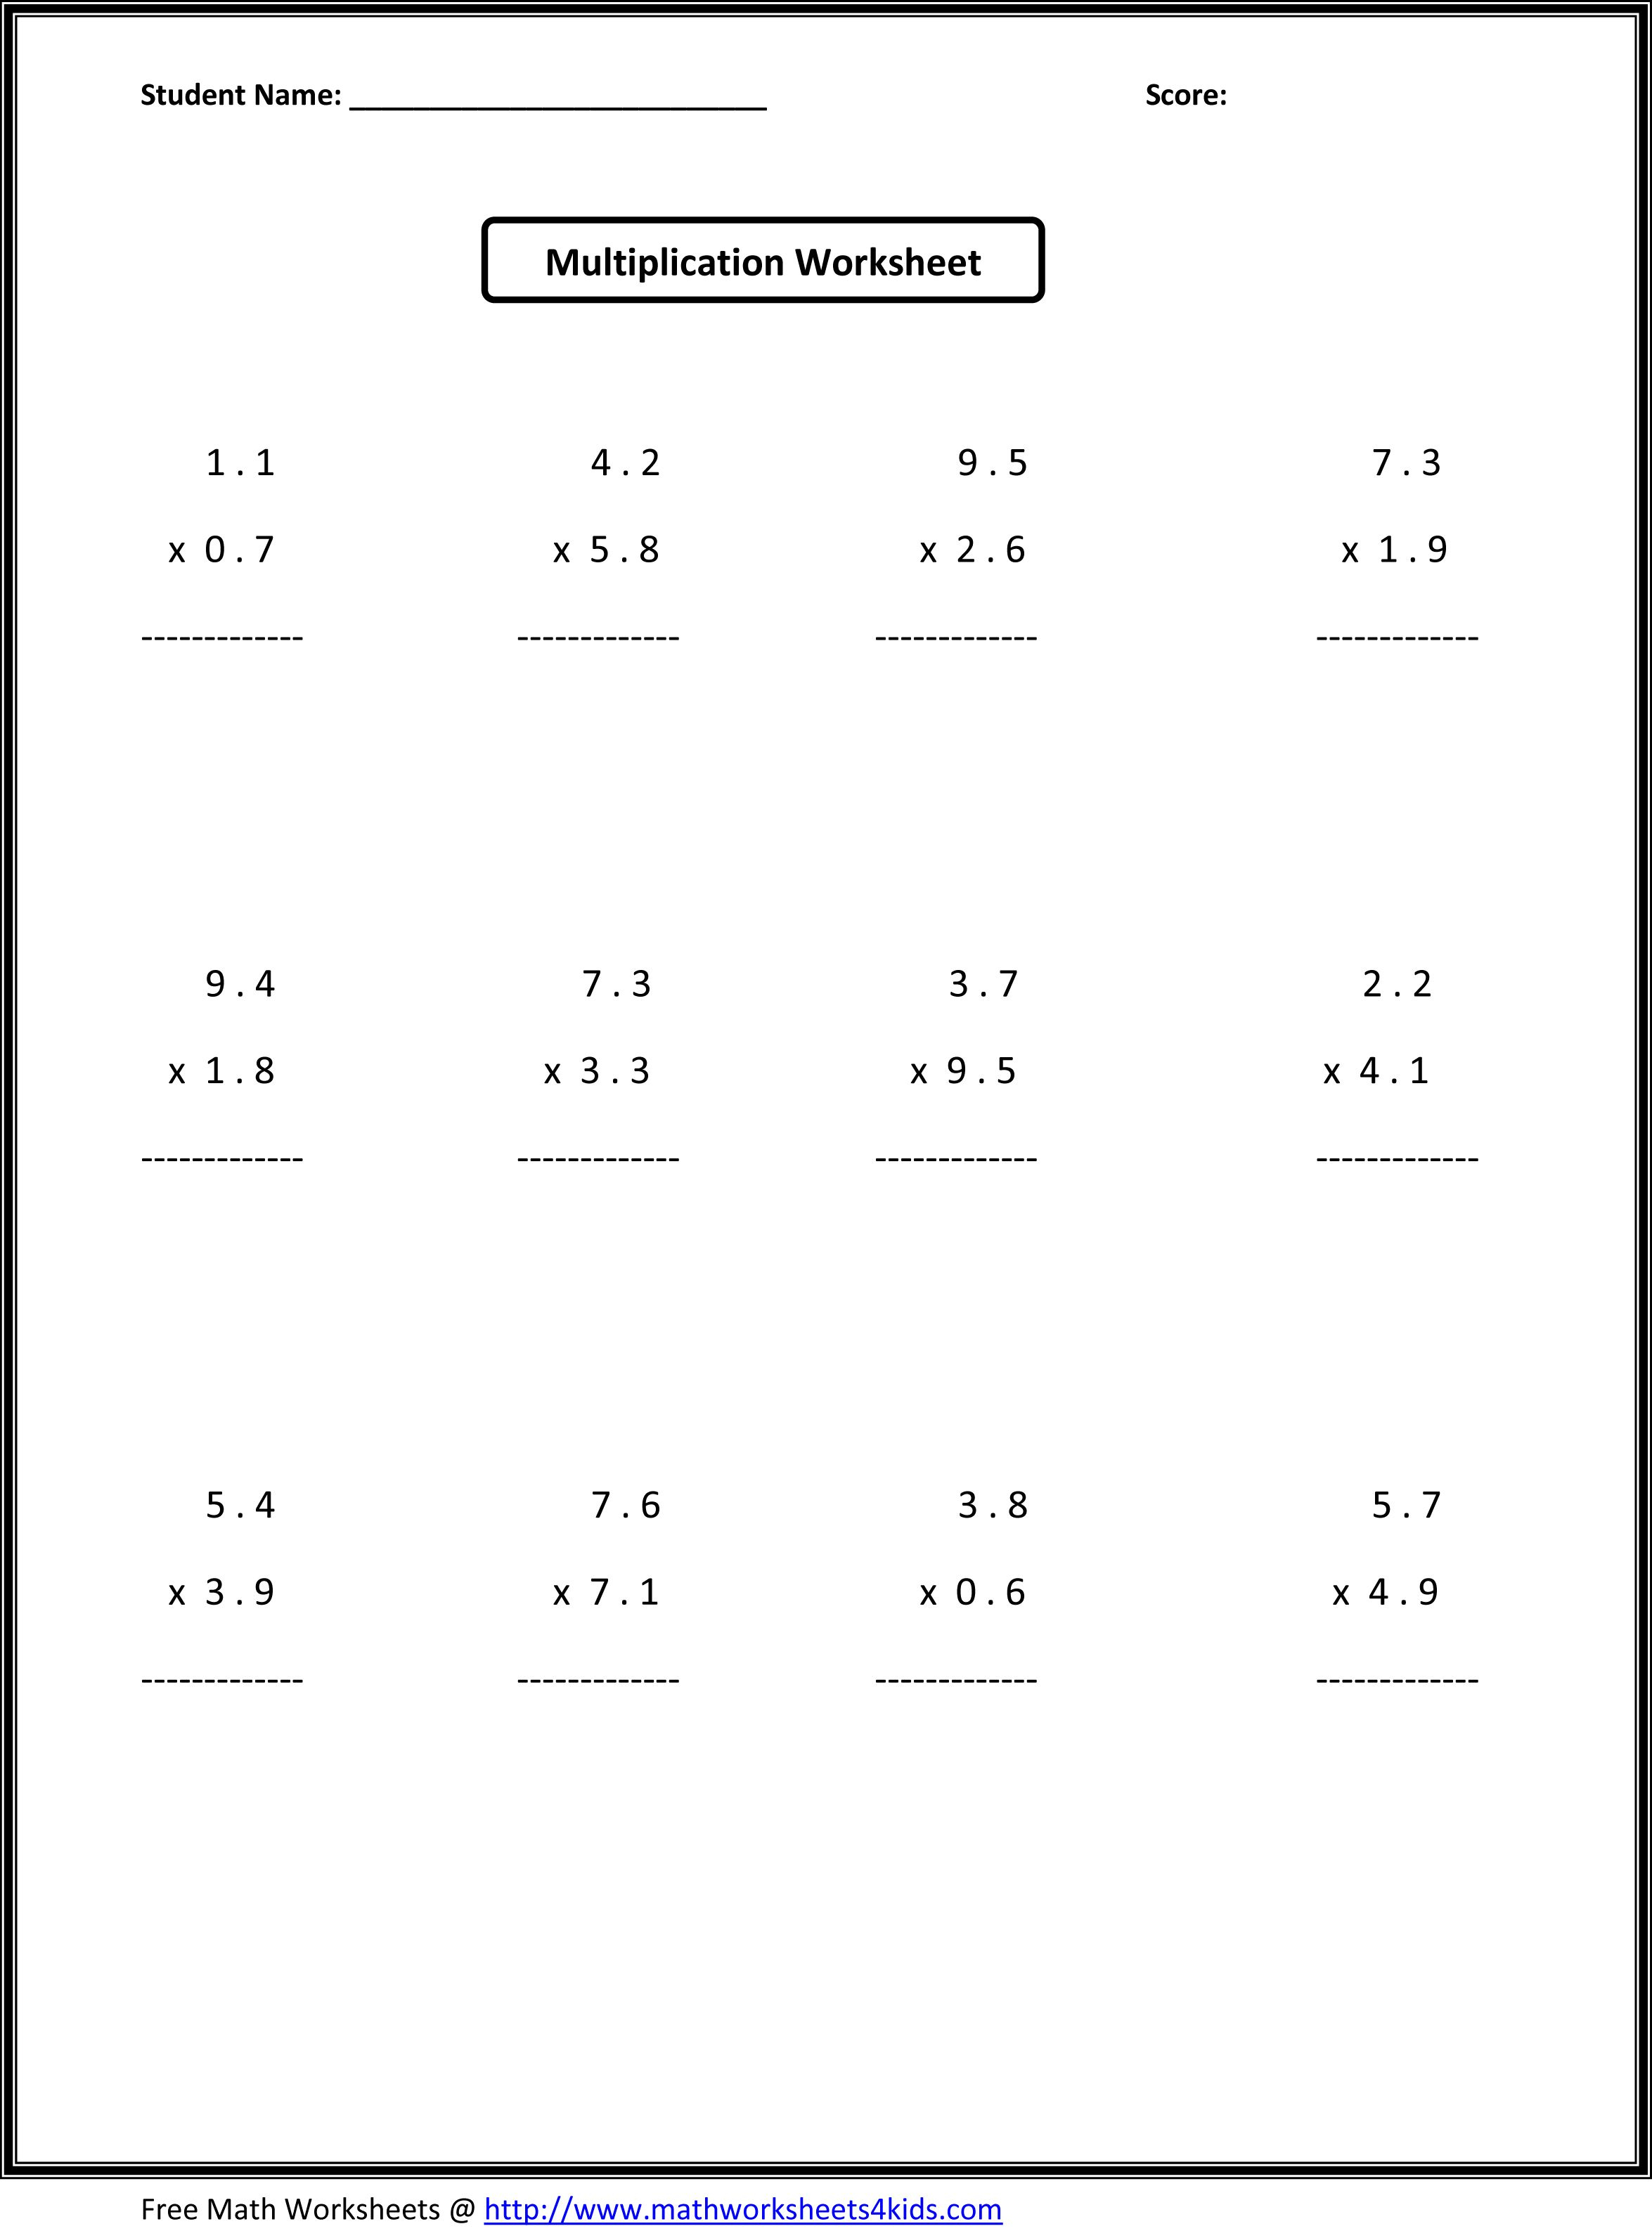 Printables Math Worksheets 7th Grade Lemonlilyfestival